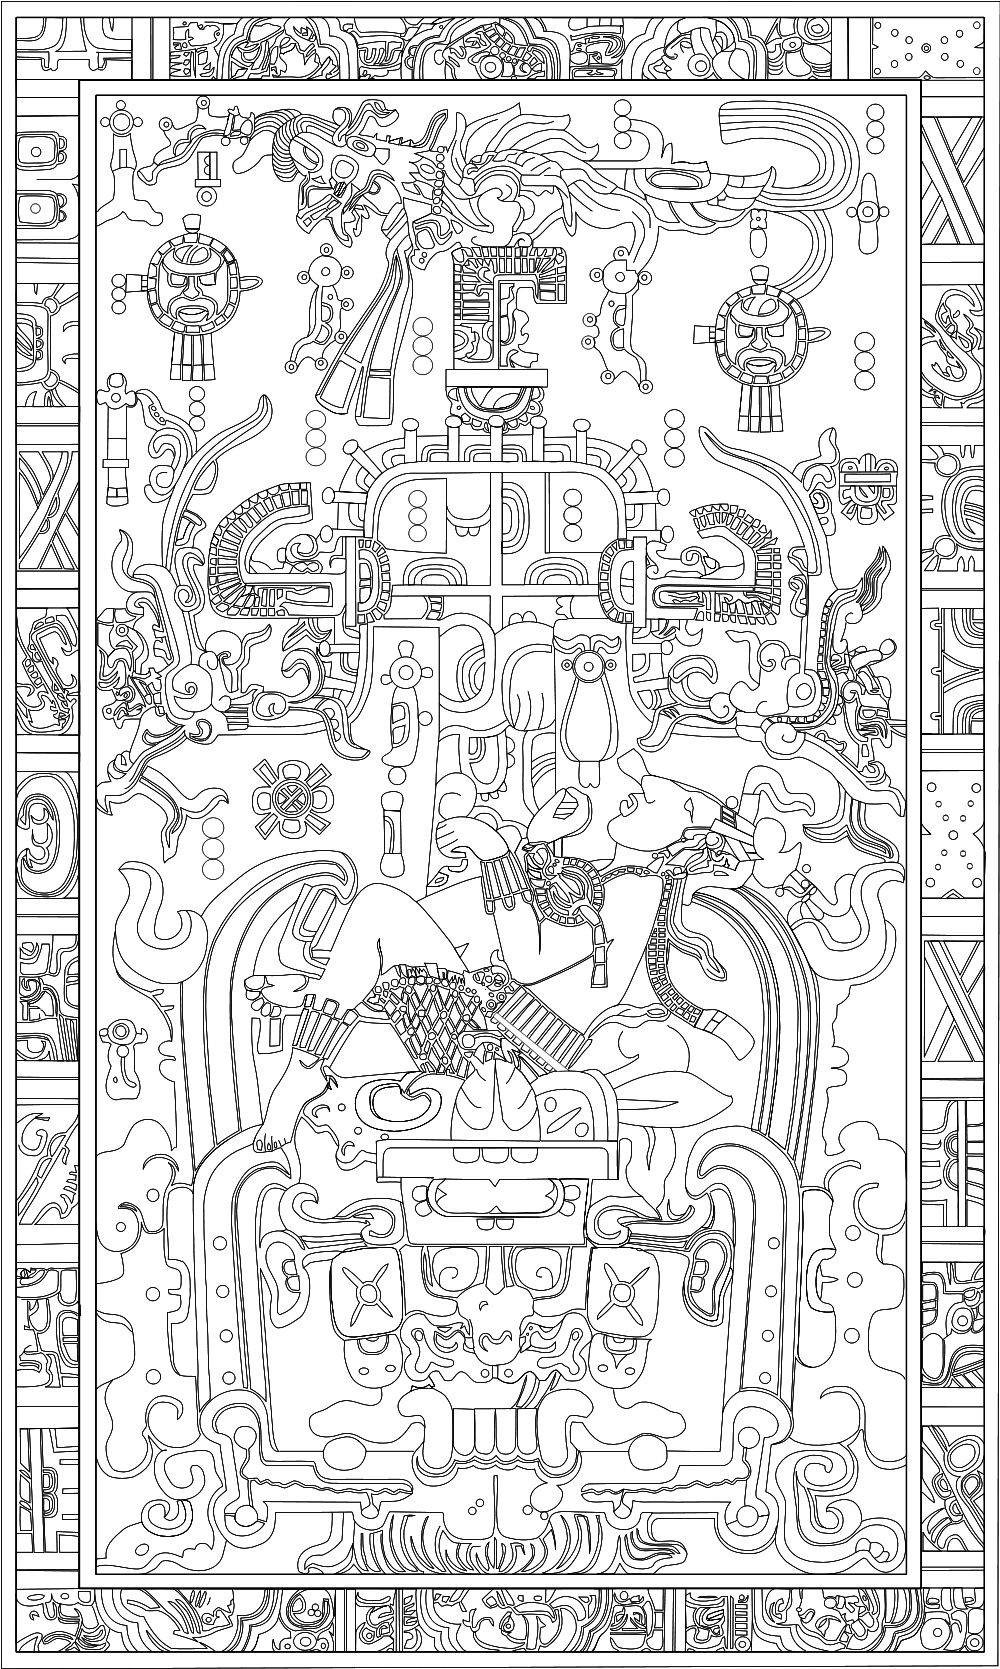 https://res.cloudinary.com/hstqcxa7w/image/fetch/c_fit,dpr_auto,f_auto,fl_lossy,q_80/https://upload.wikimedia.org/wikipedia/commons/d/d9/Pakal_the_Great_tomb_lid.png